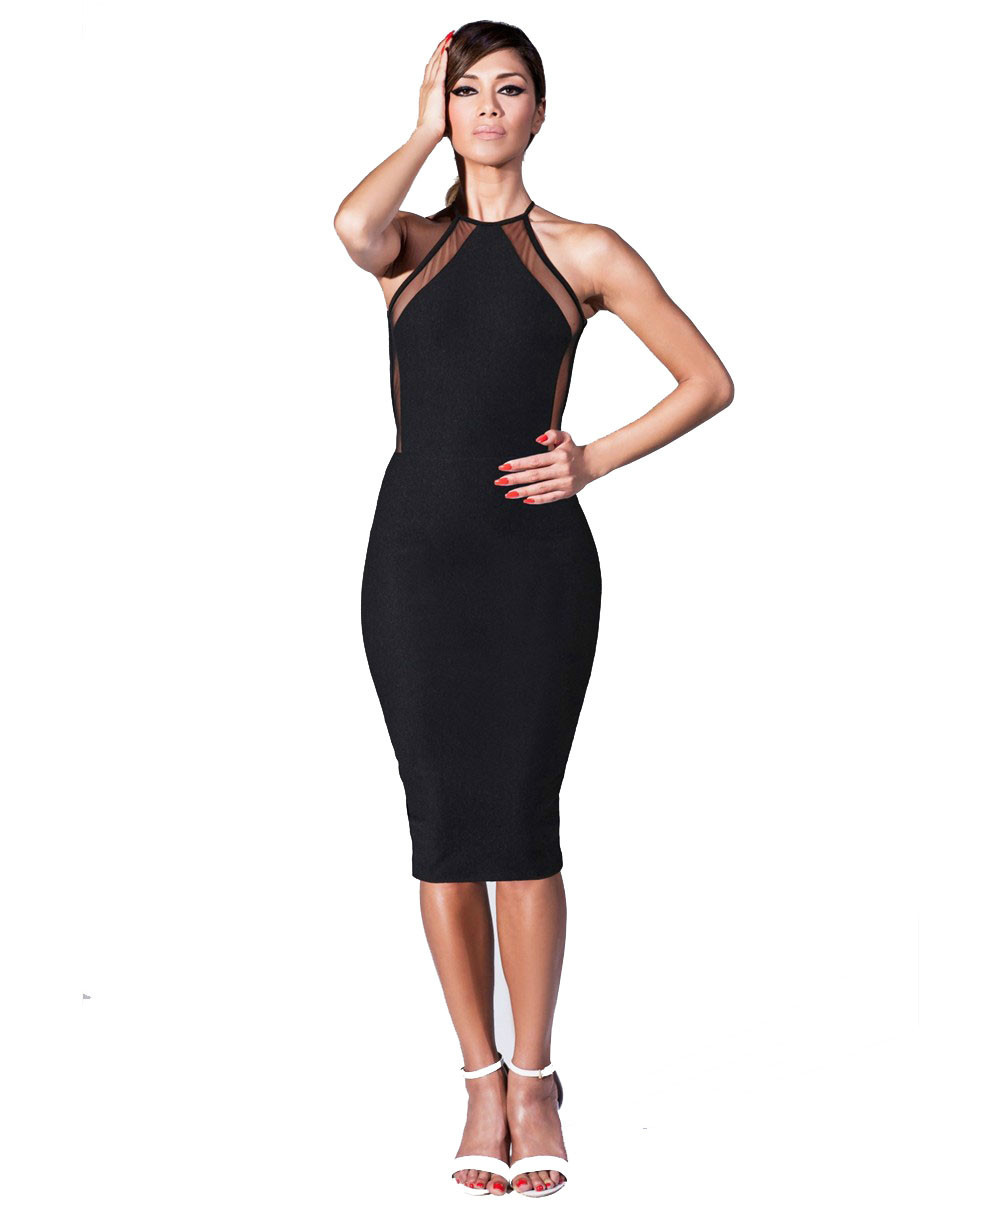 buy s xxl plus size bandage dress 2016. Black Bedroom Furniture Sets. Home Design Ideas